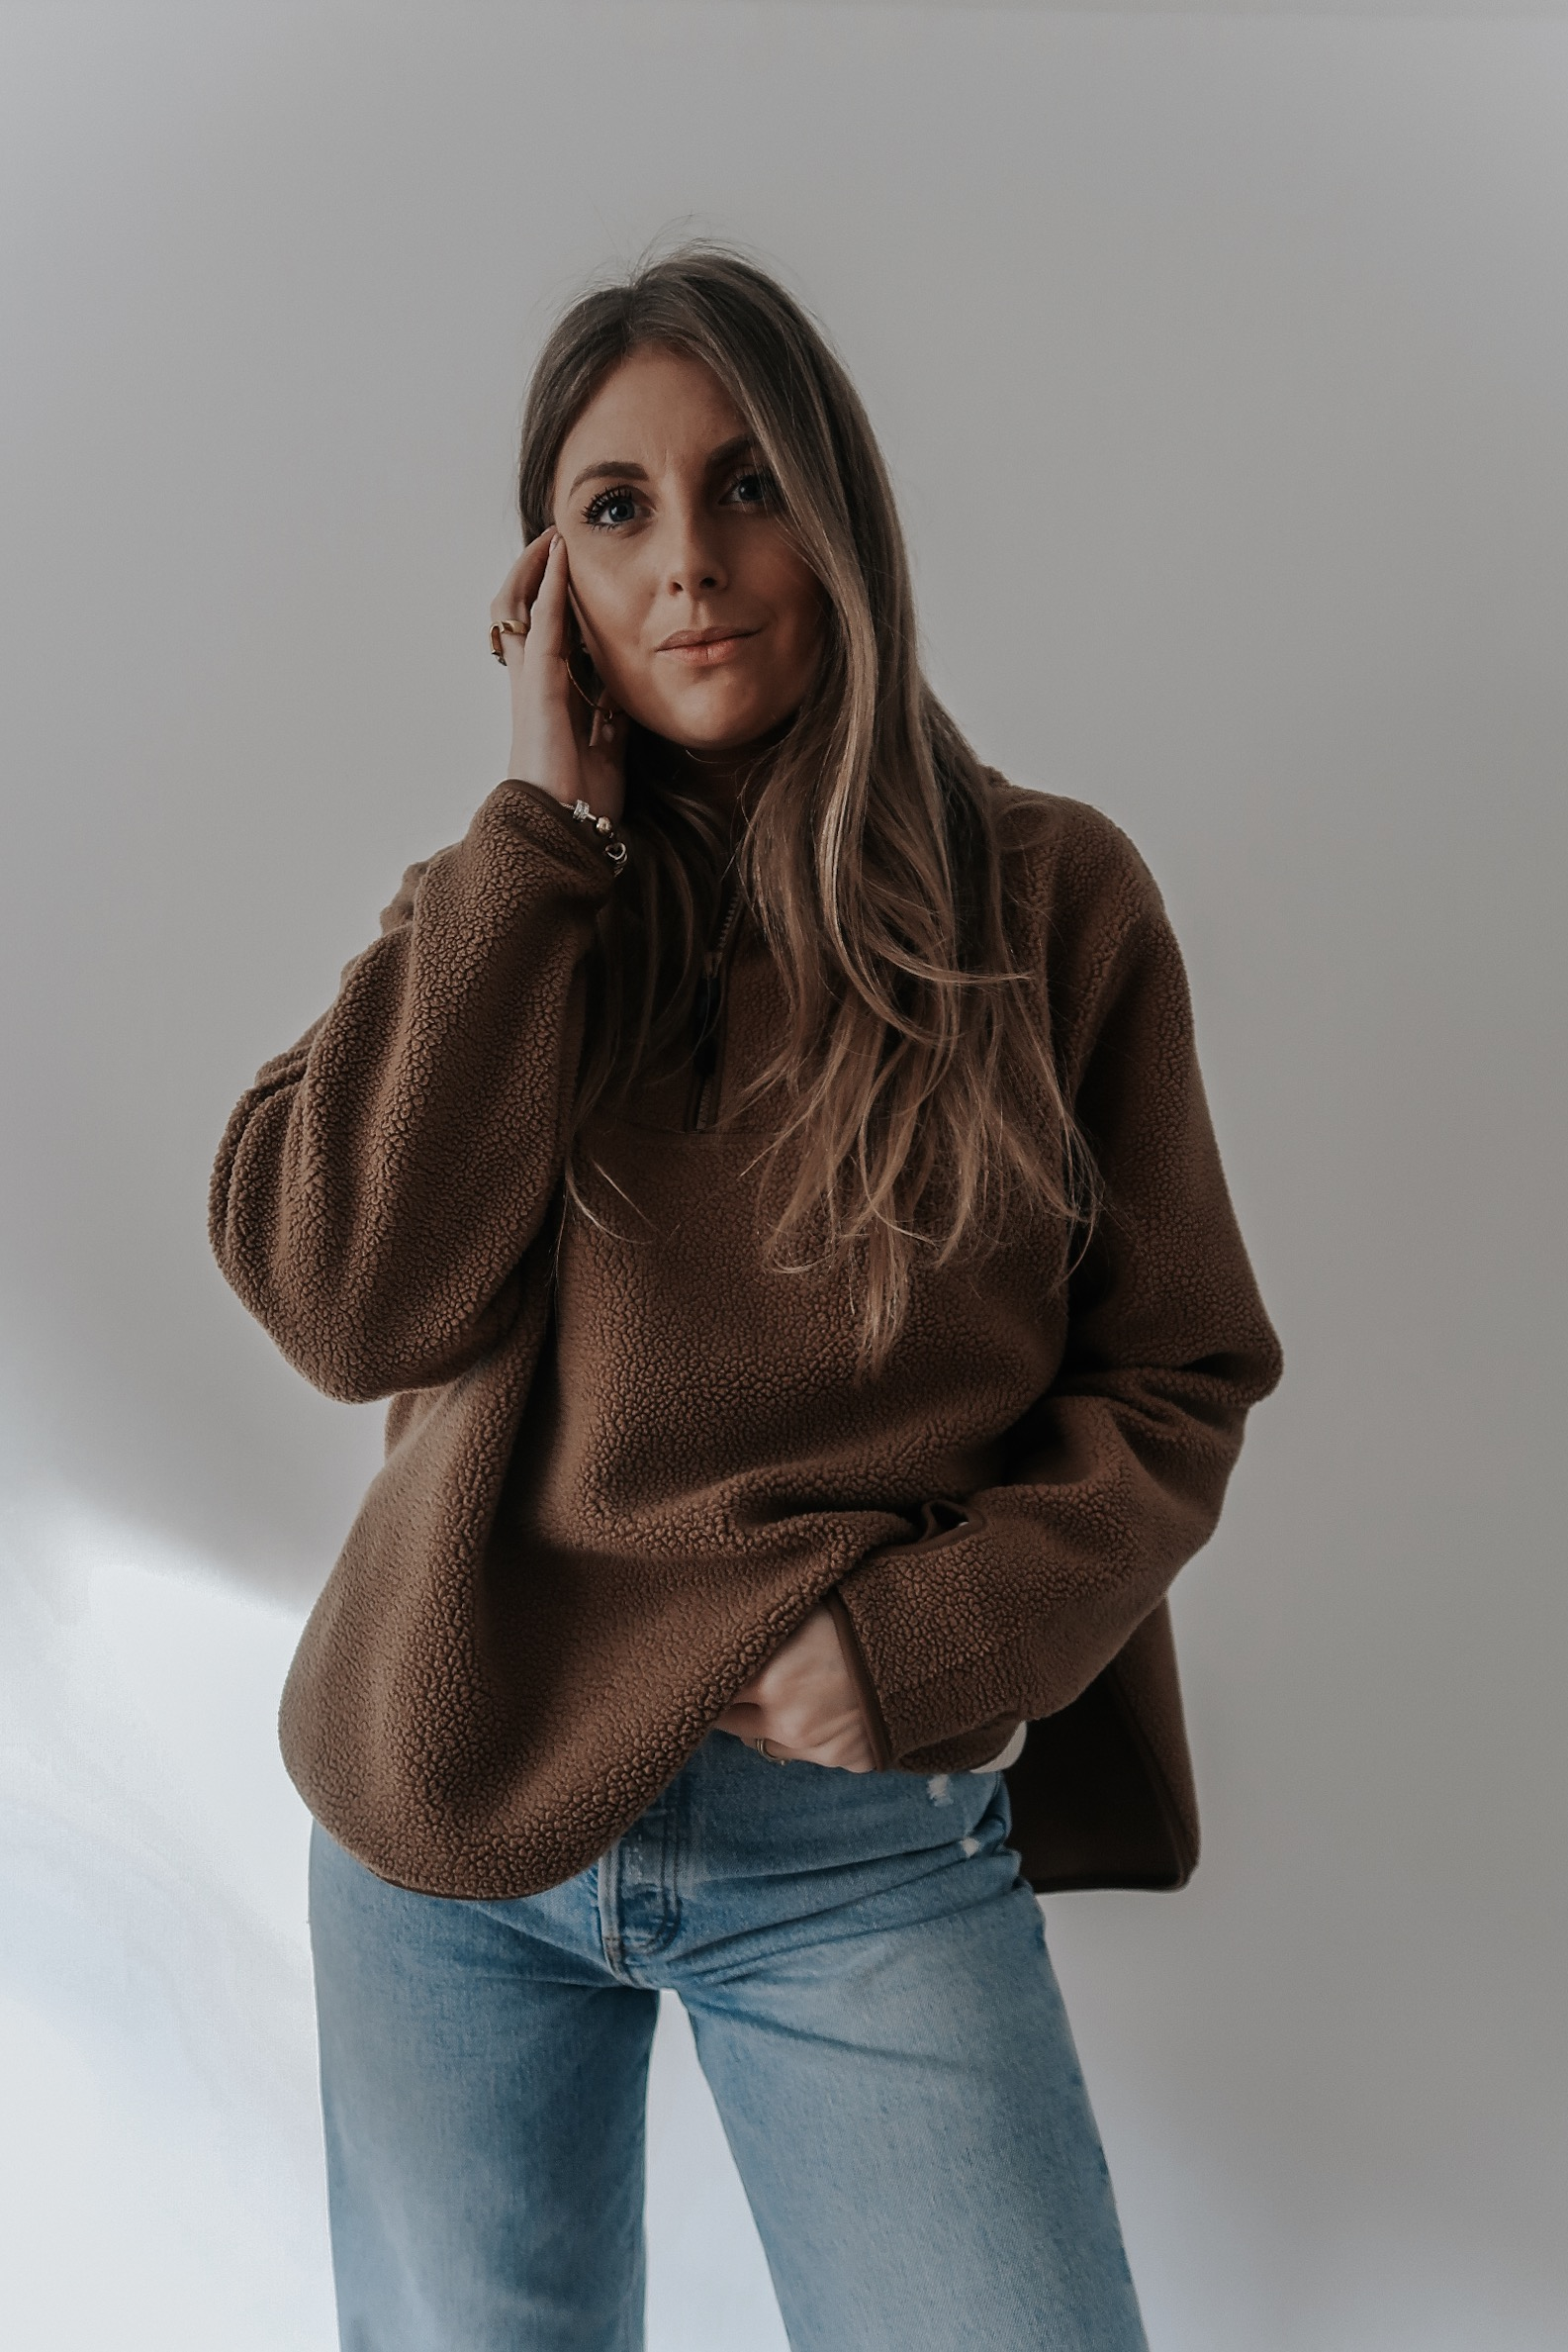 Shopping Edit - Arket Brown Fleece - Sinead Crowe